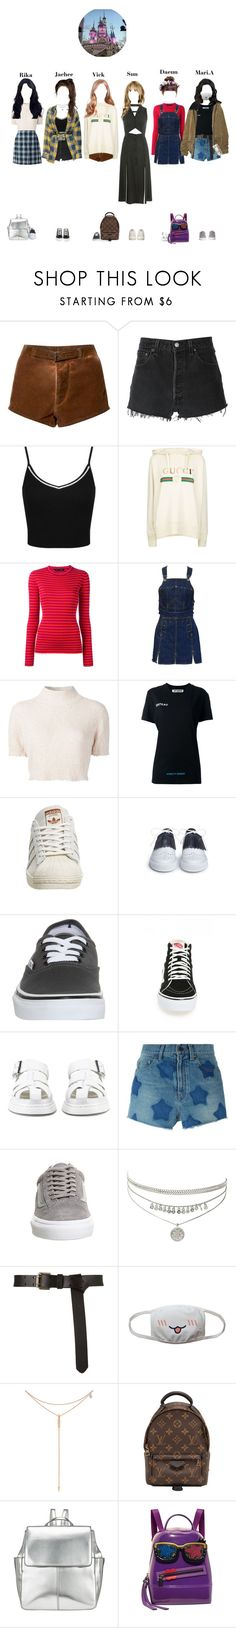 """Lotte World with 4U"" by starz-official ❤ liked on Polyvore featuring Paskal, RE/DONE, Miss Selfridge, Gucci, Proenza Schouler, Jean-Paul Gaultier, Rachel Comey, Off-White, Lands' End and adidas"